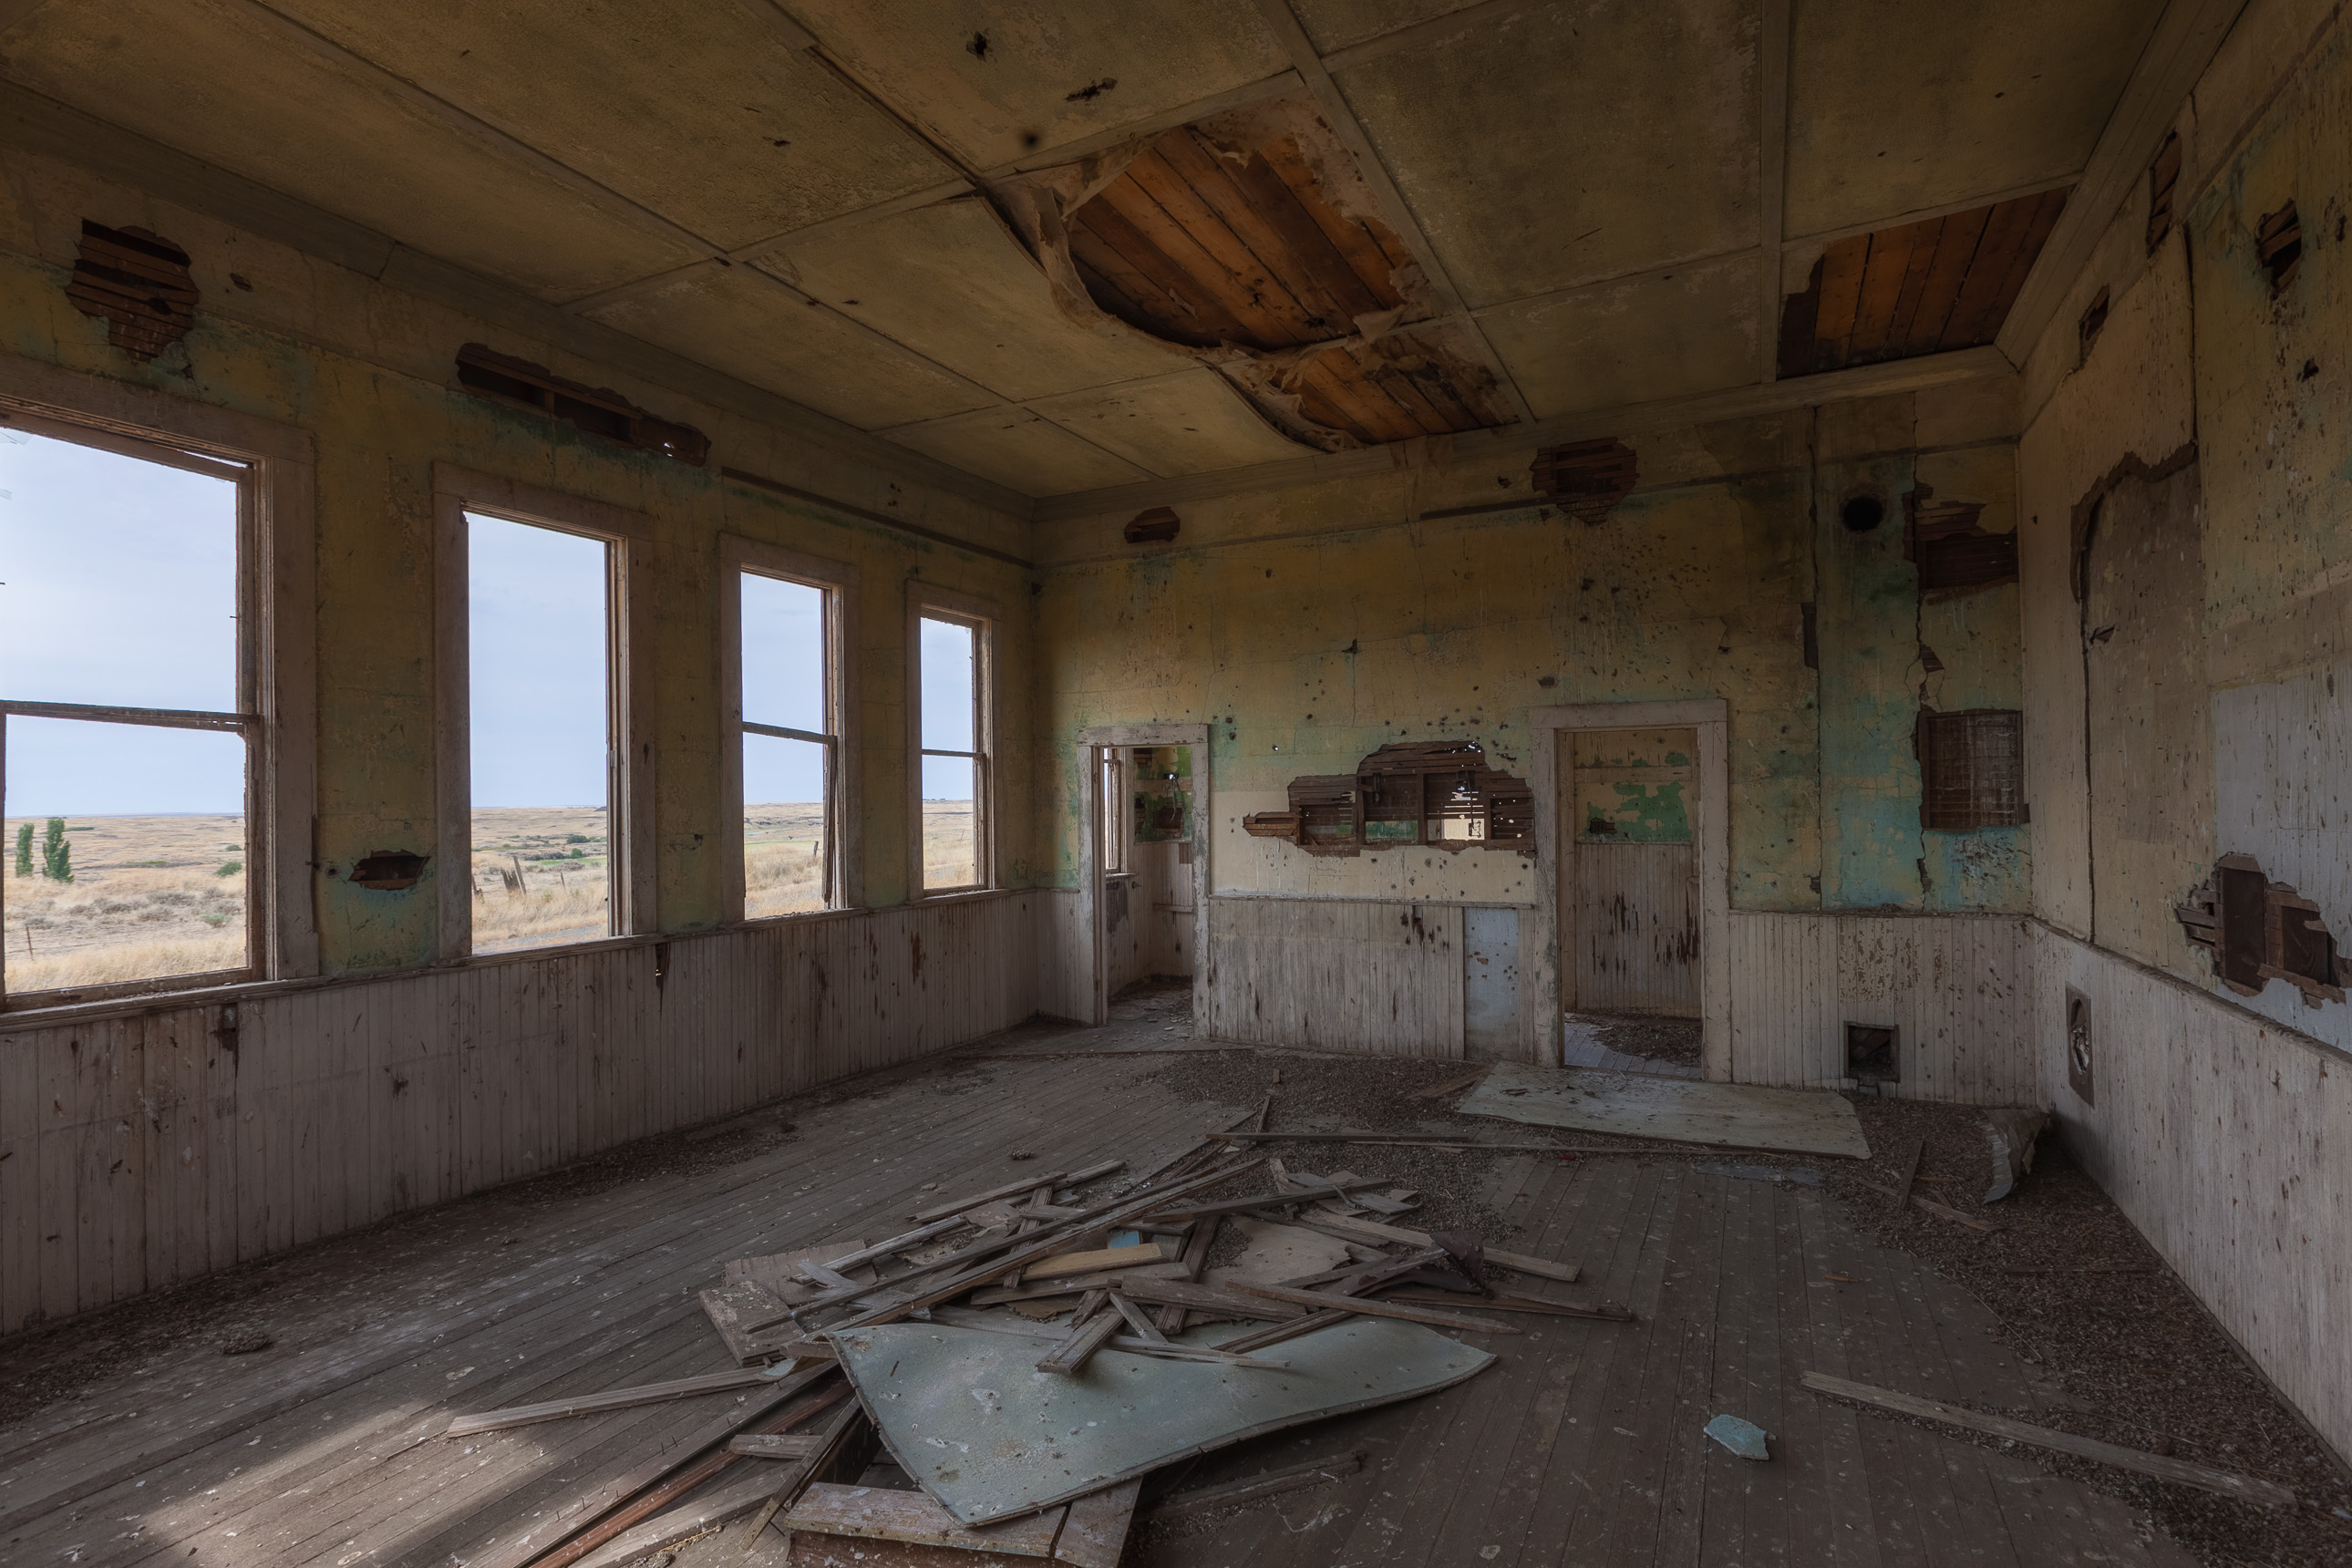 Abandoned School Room in Eastern Washington